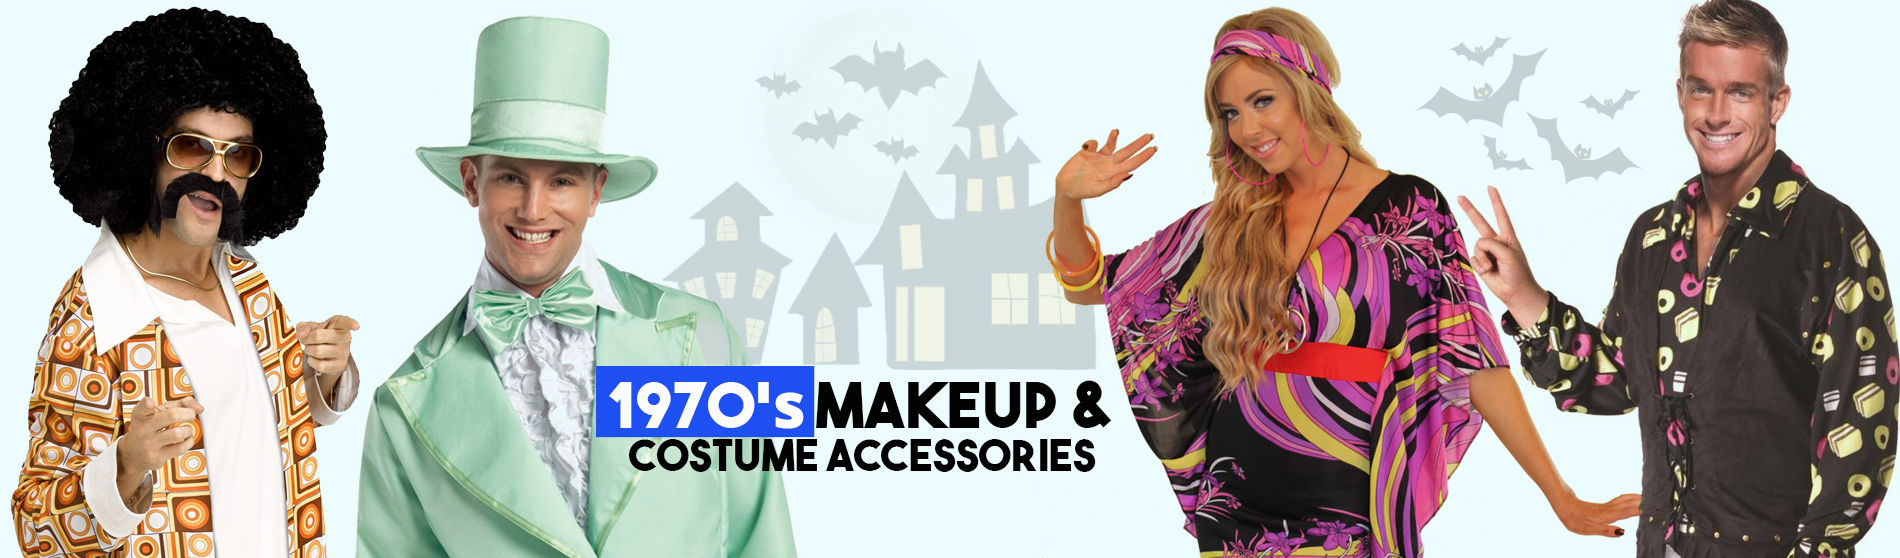 70-Costume-Accessories-and-Makeup